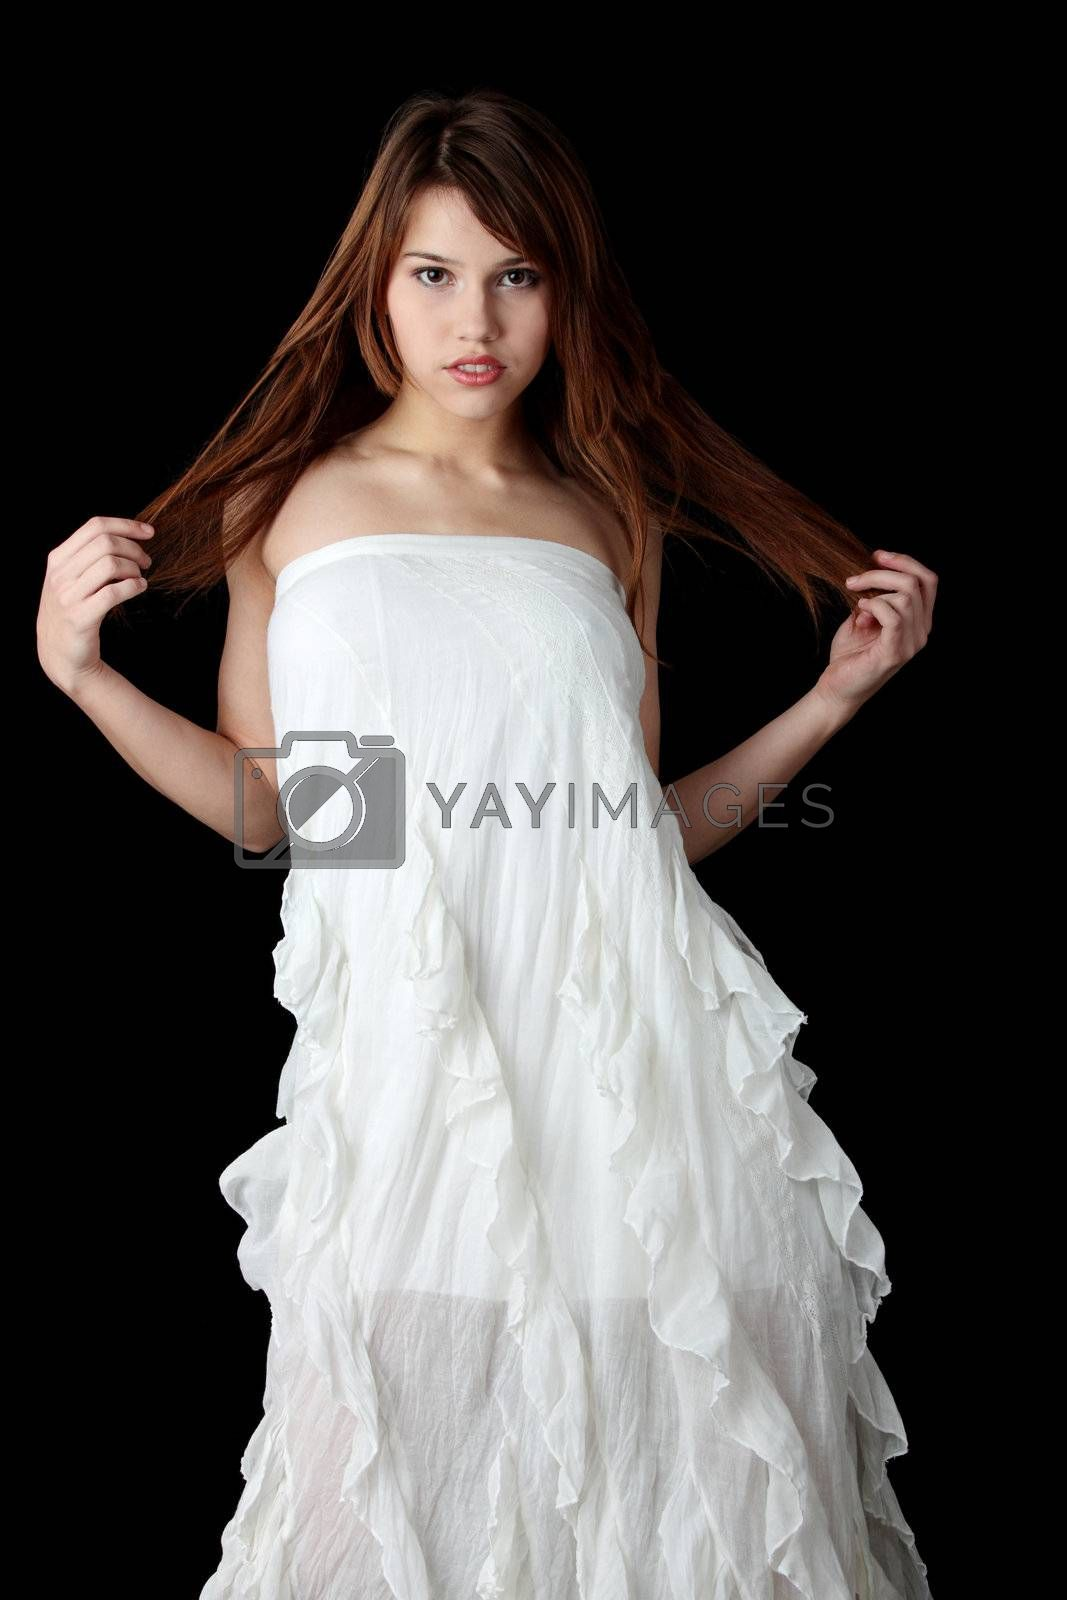 A young beautiful woman in white dress